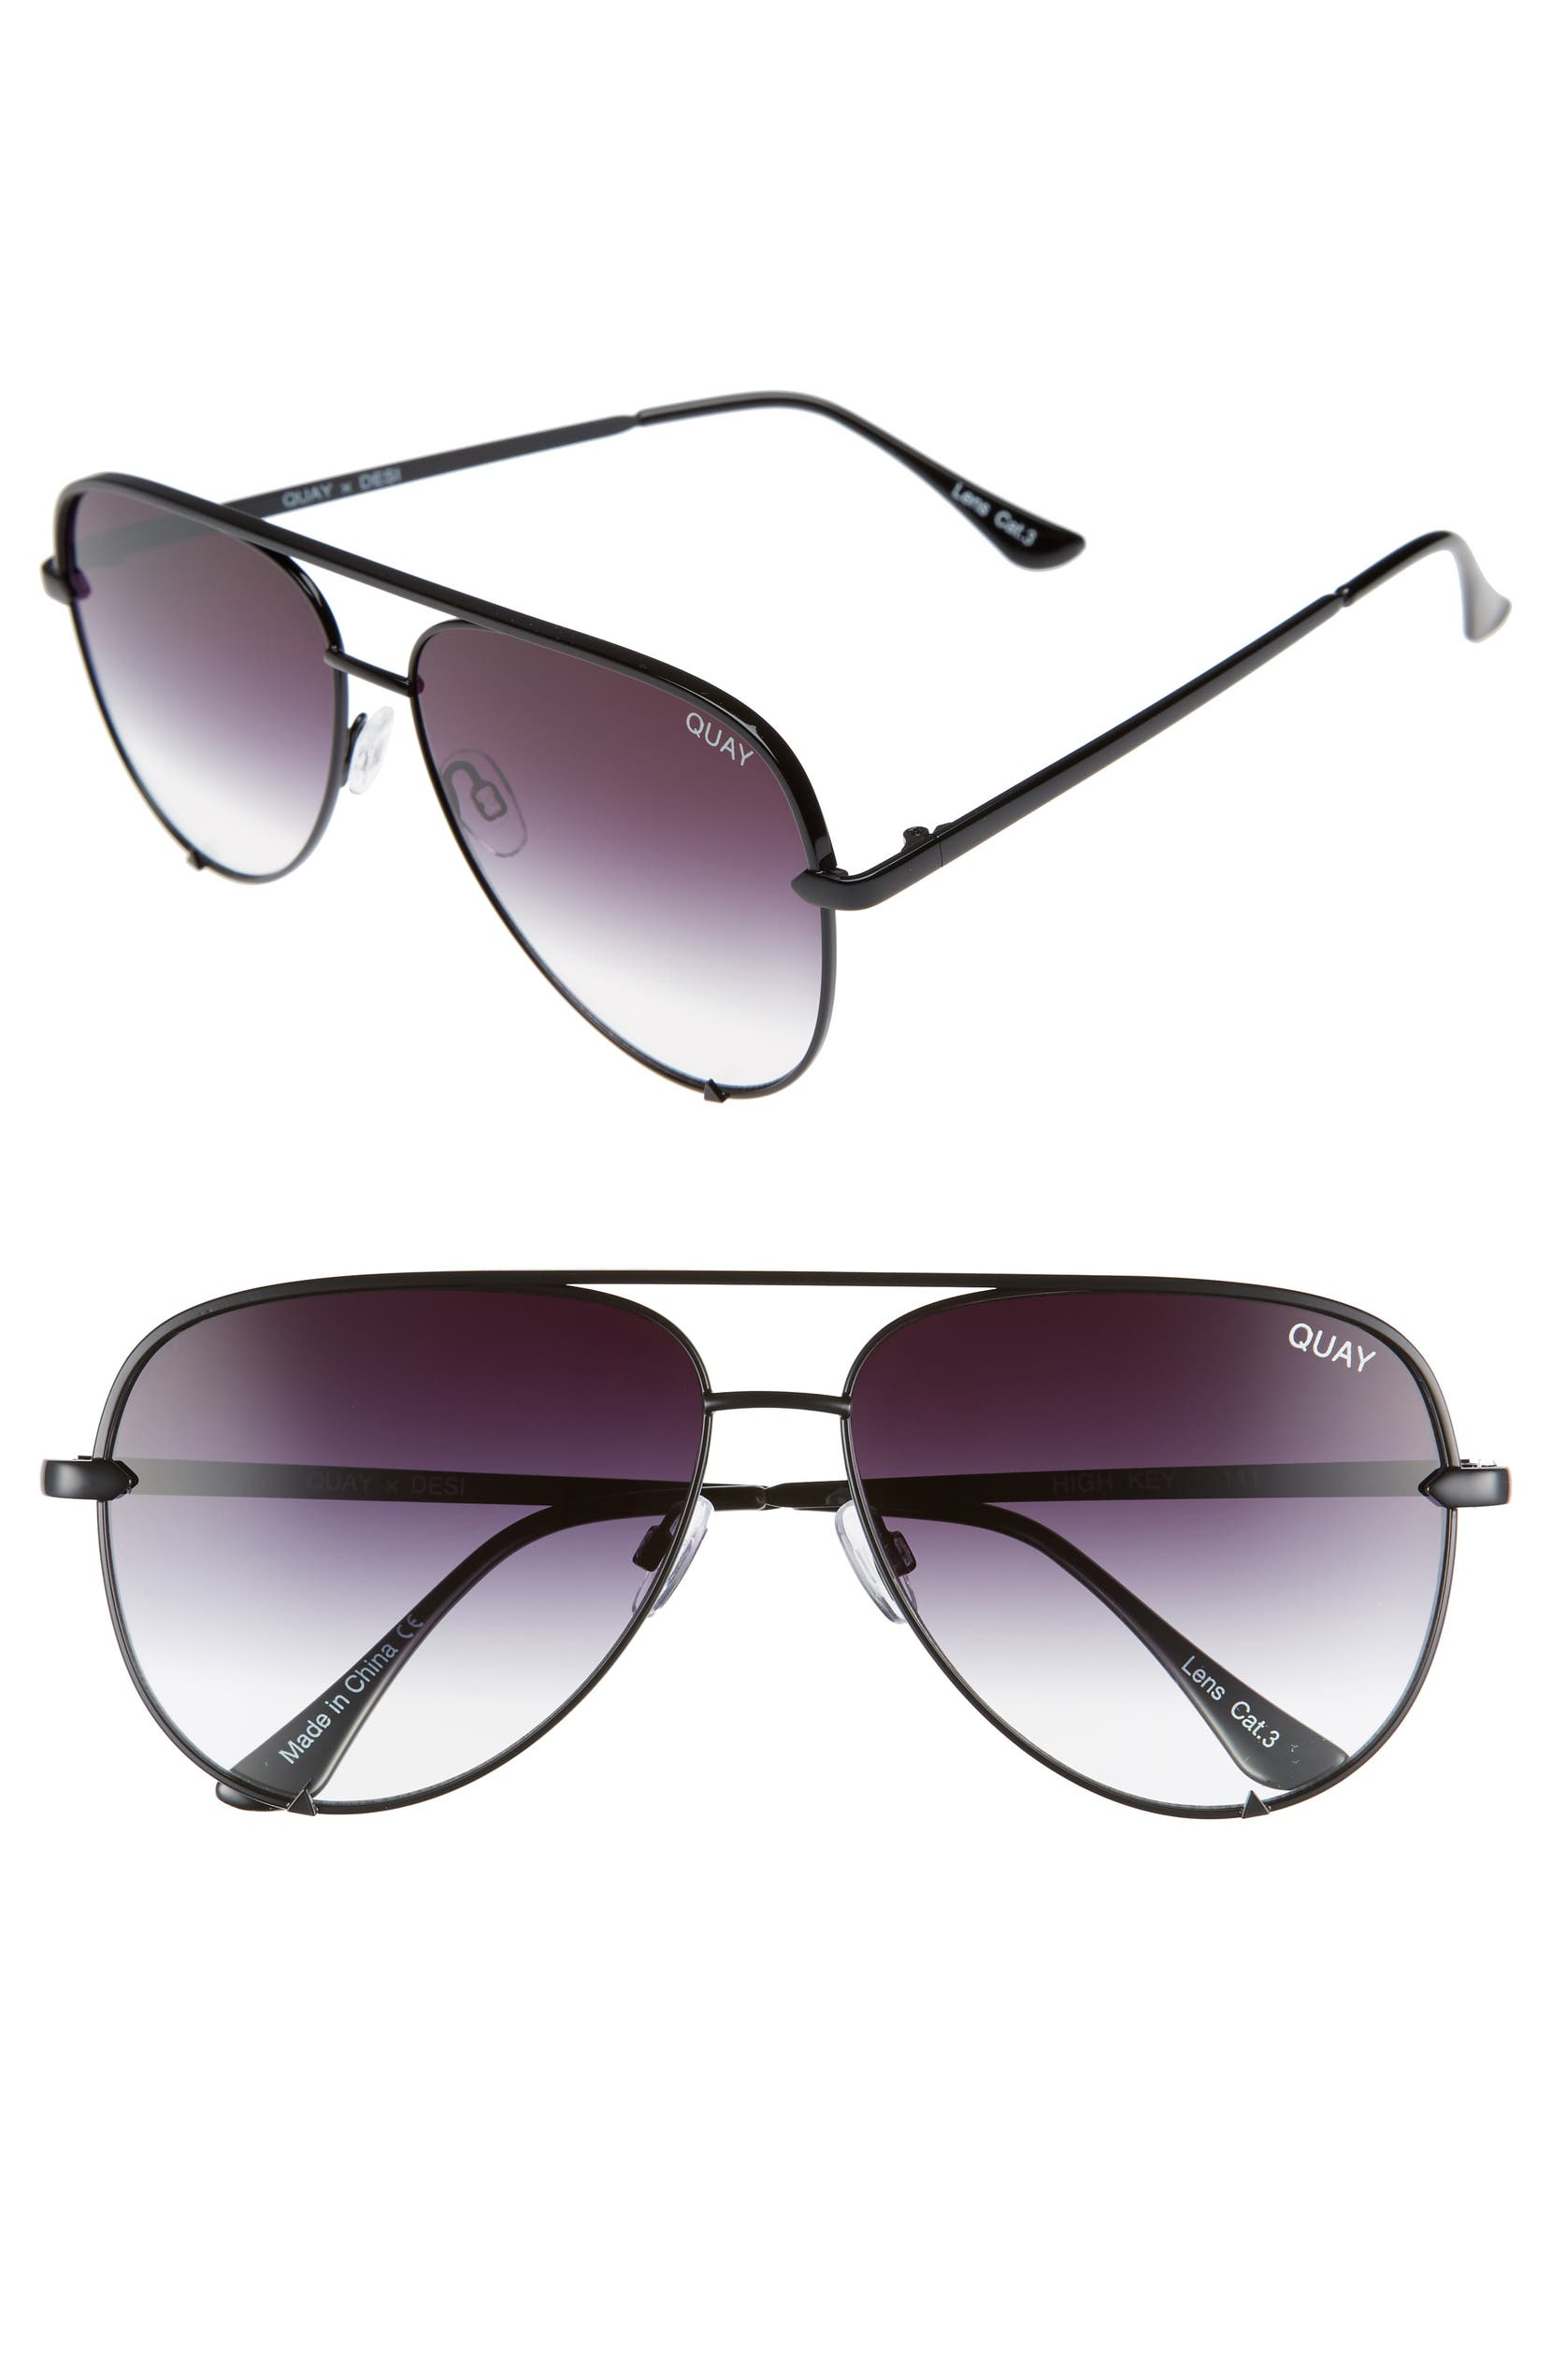 4c76241b93781 Quay Australia x Desi Perkins High Key 62mm Aviator Sunglasses ...